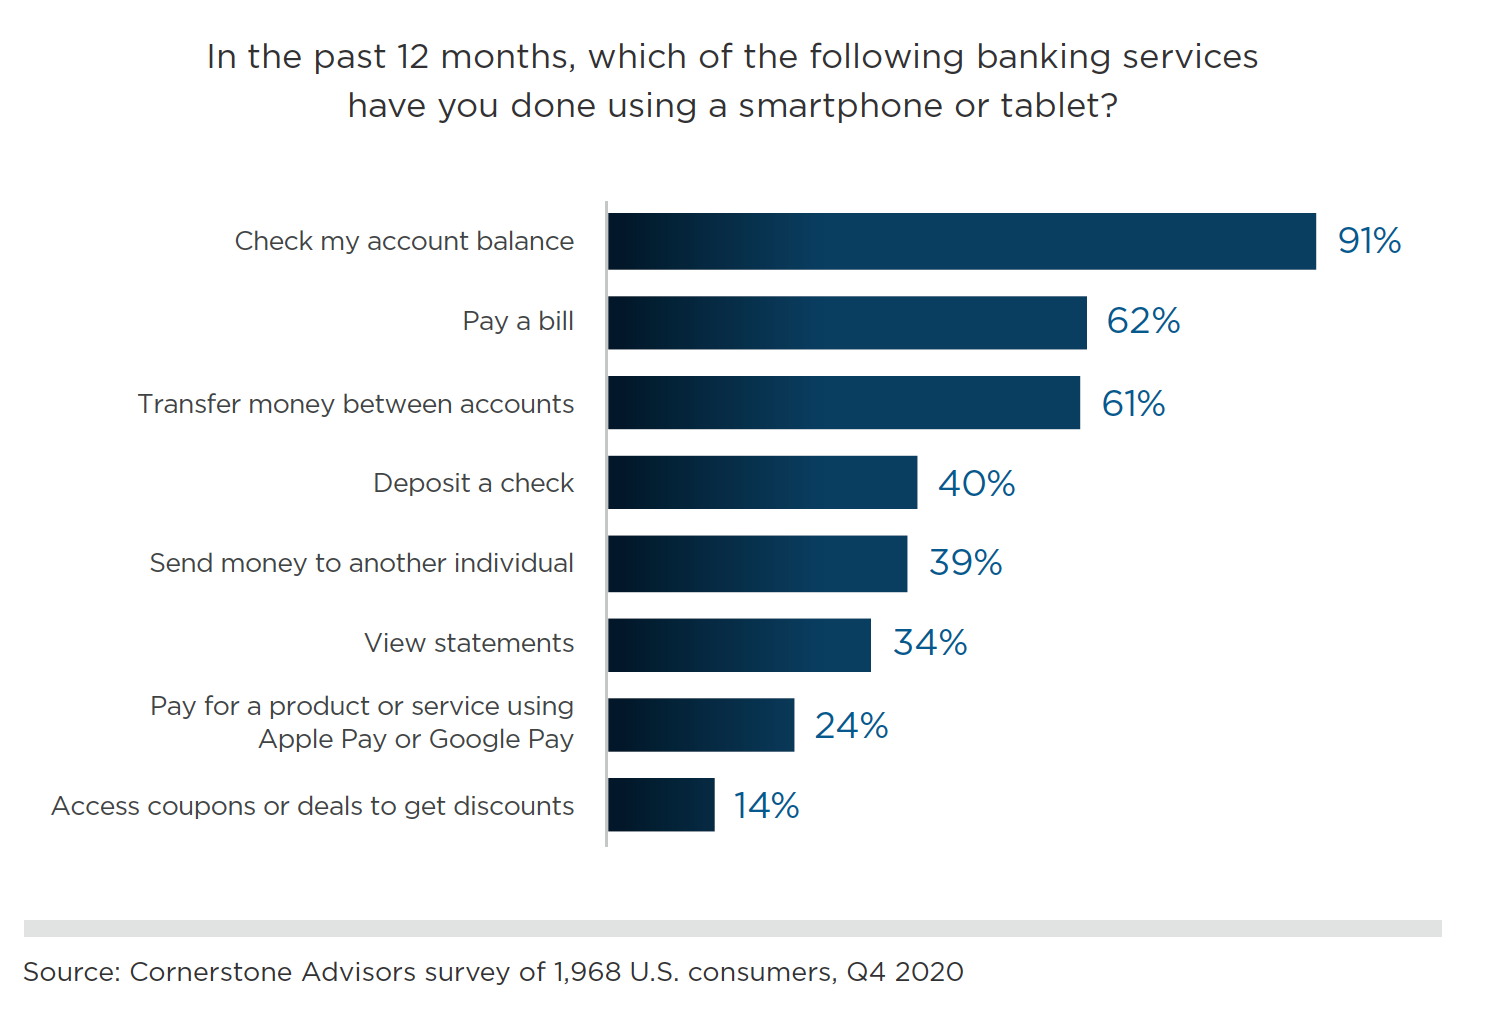 mobile banking features used in 2020